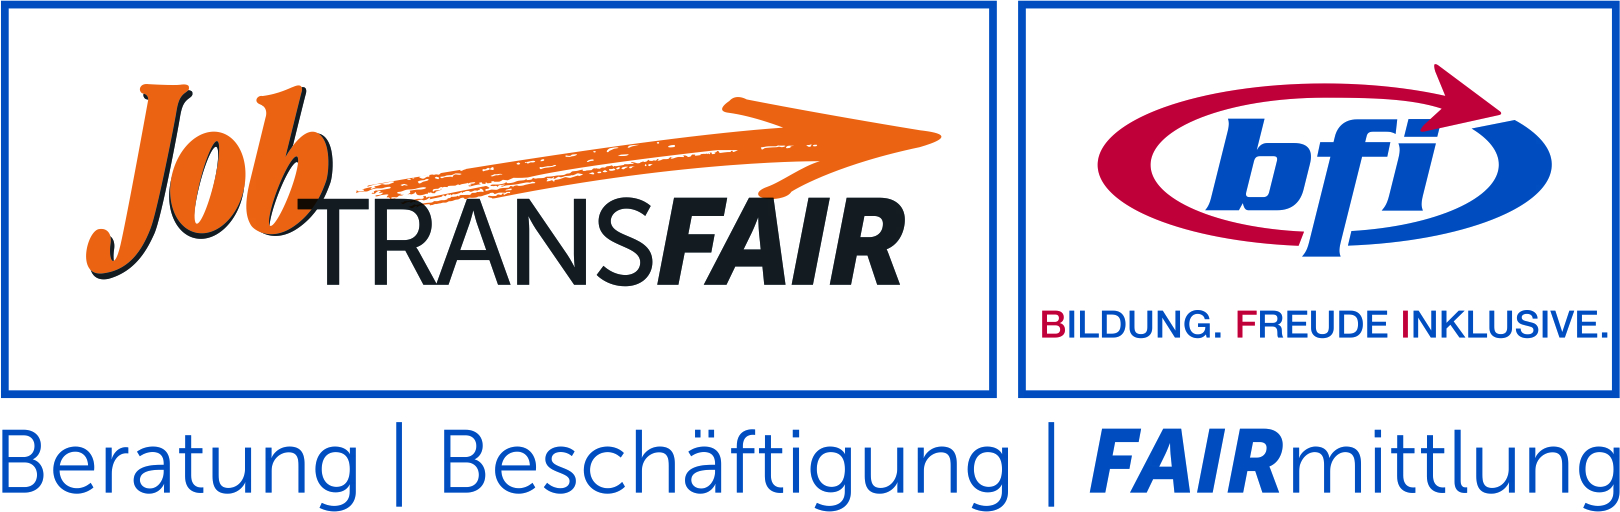 Logo Jobtrainsfair